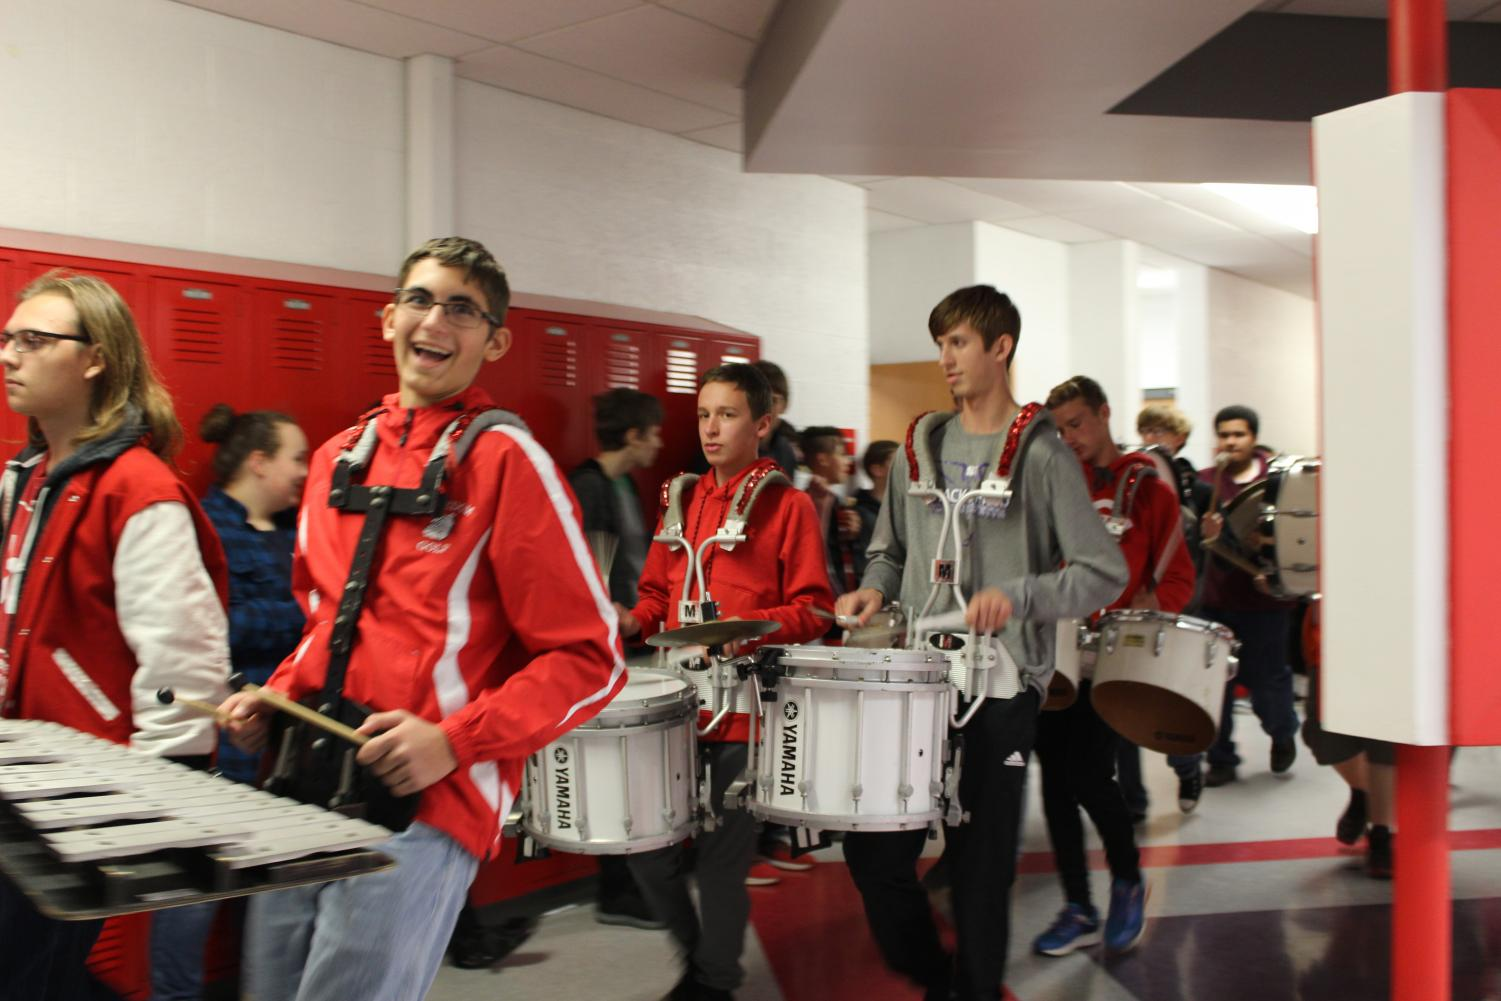 Members of the Freedom Big Red Marching Band accompany the football and soccer players during the Pep Parade through Freedom Middle School on Nov. 2.